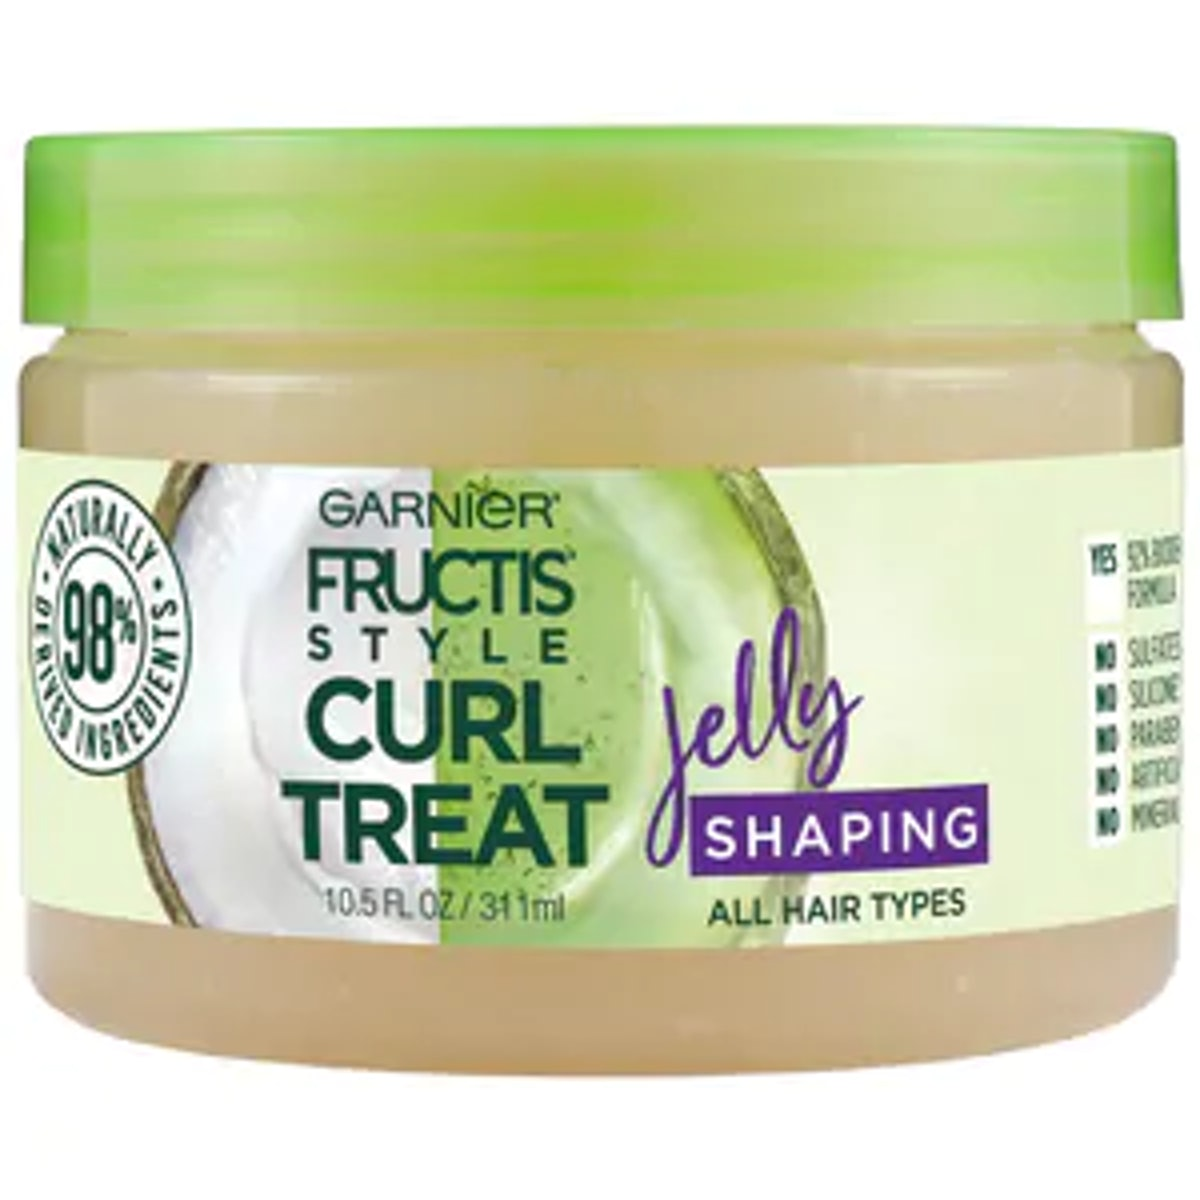 Curl Treat Jelly Shaping Leave-in Styler